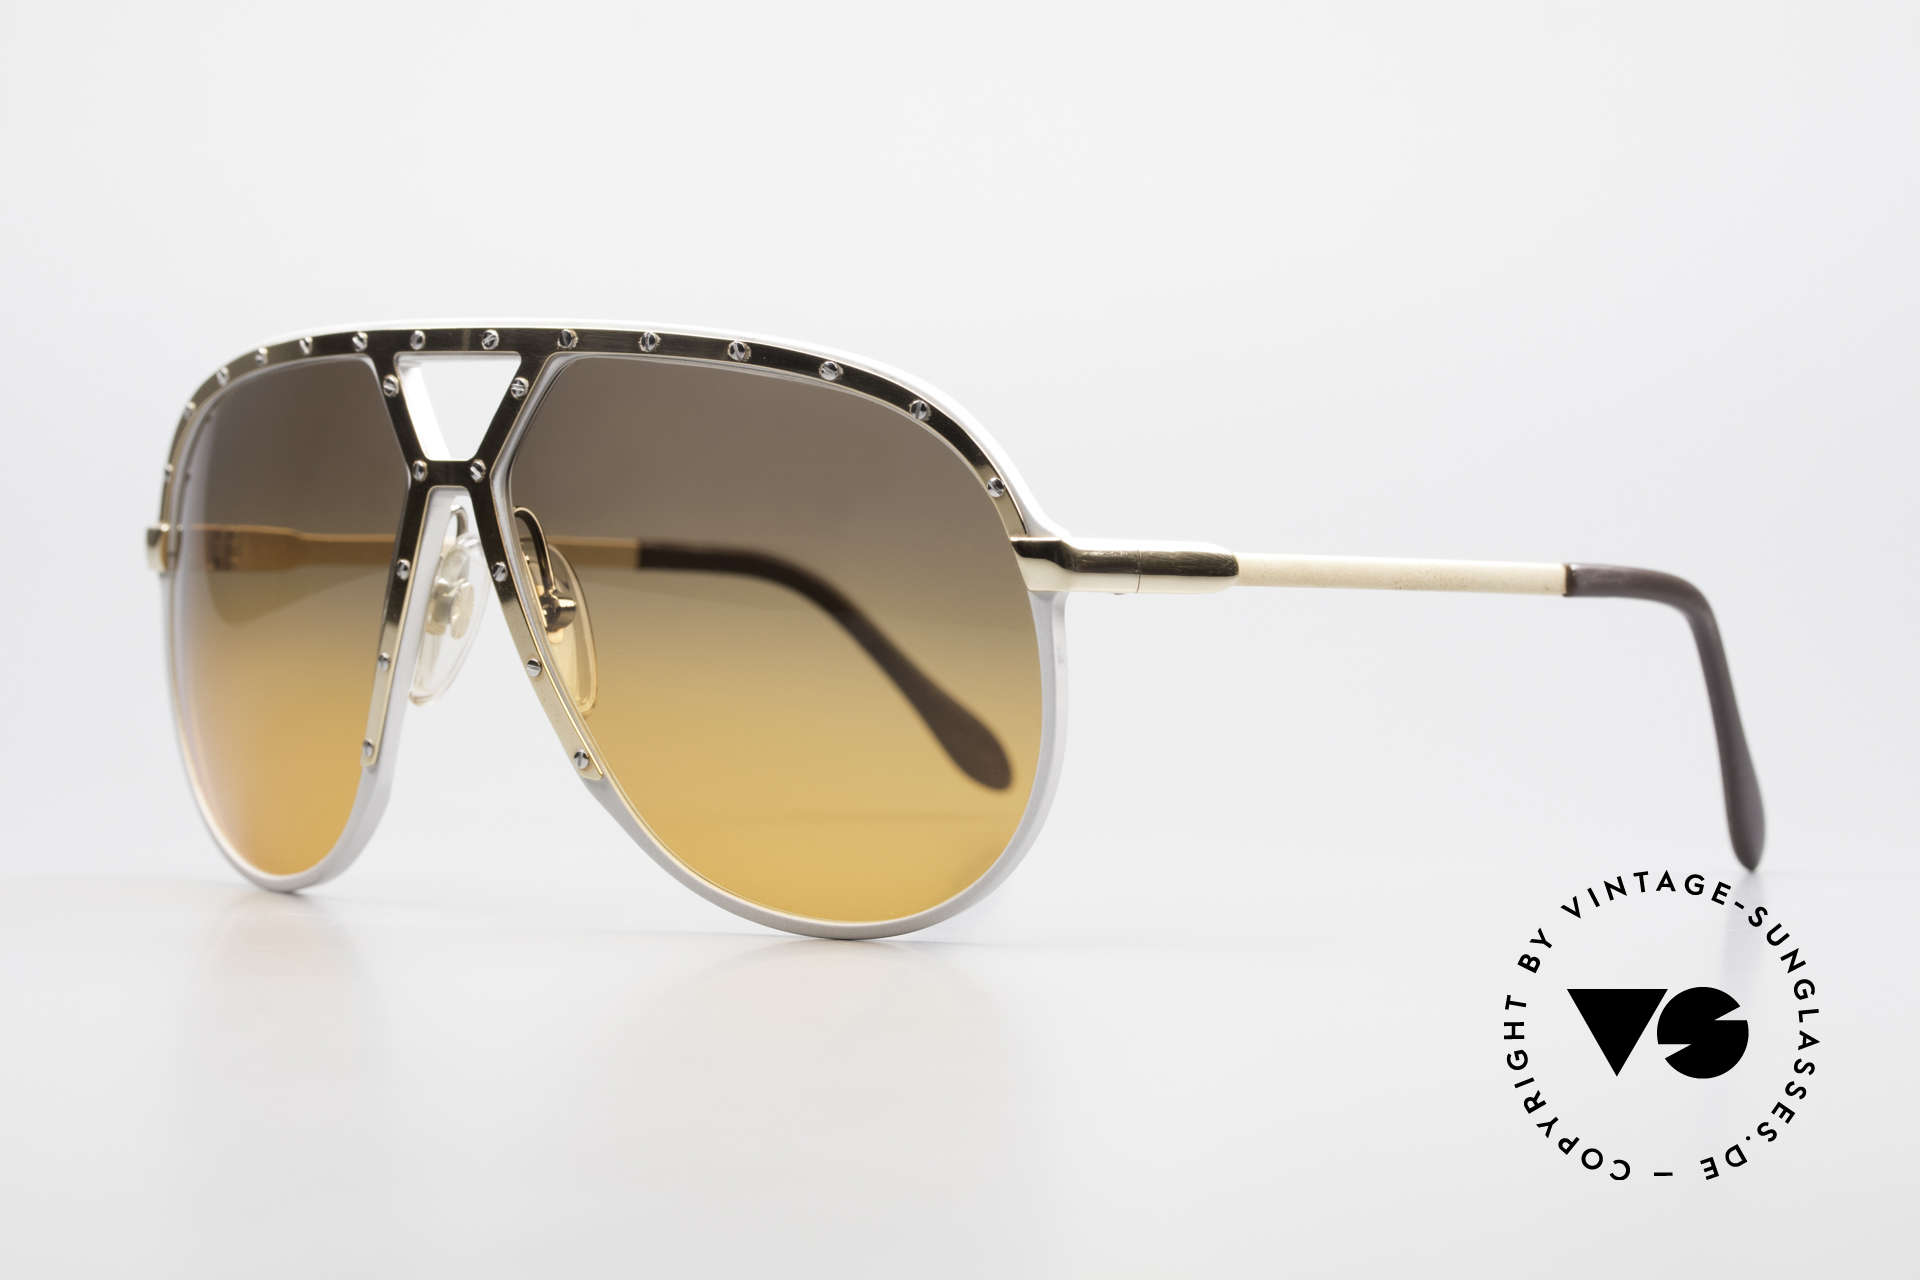 Alpina M1 80's Sunglasses One Of A Kind, silver frame with GOLD-plated cover and temples, Made for Men